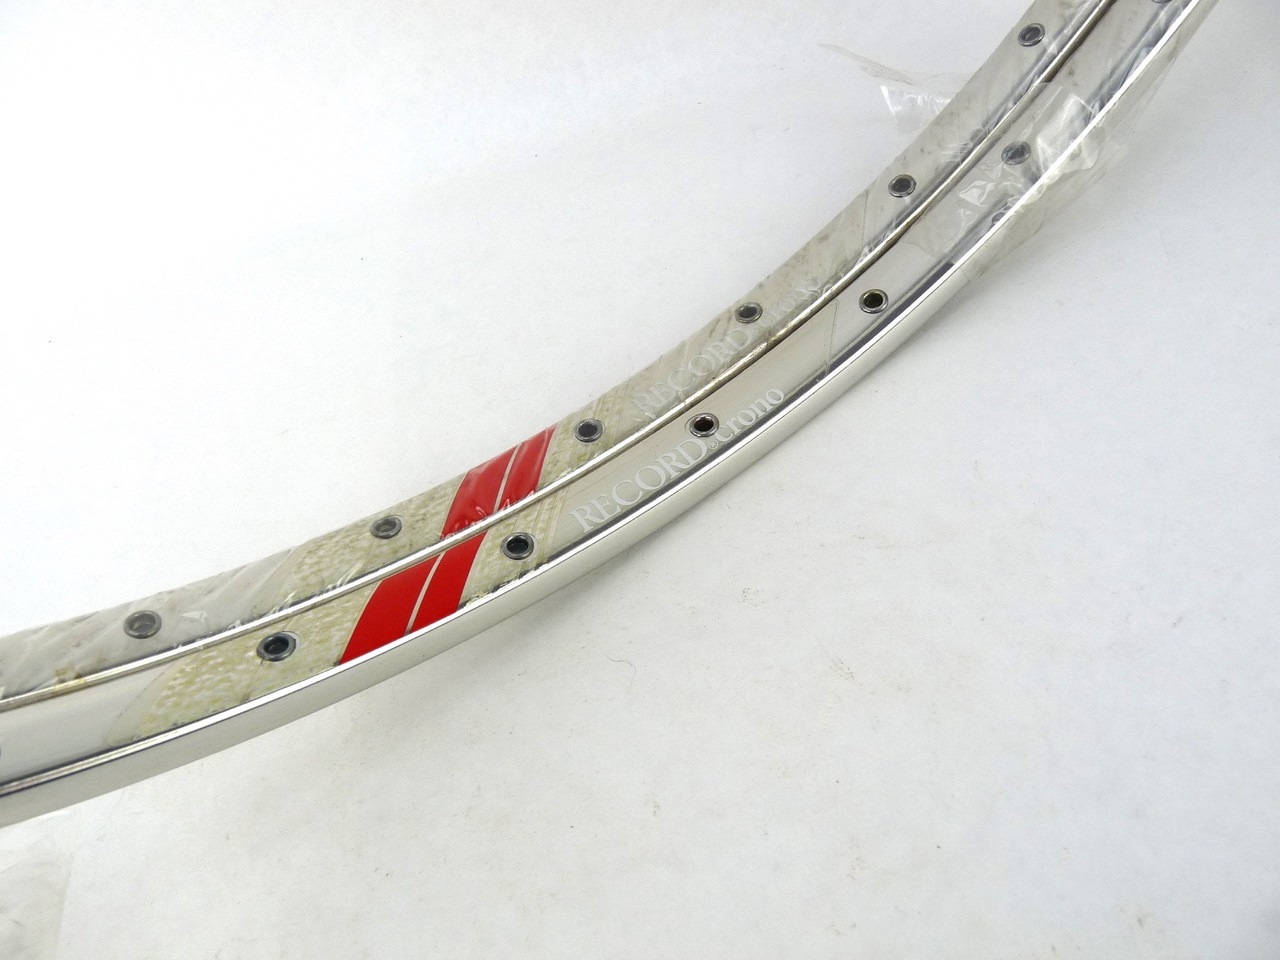 Nisi Countach rim decals for two rims